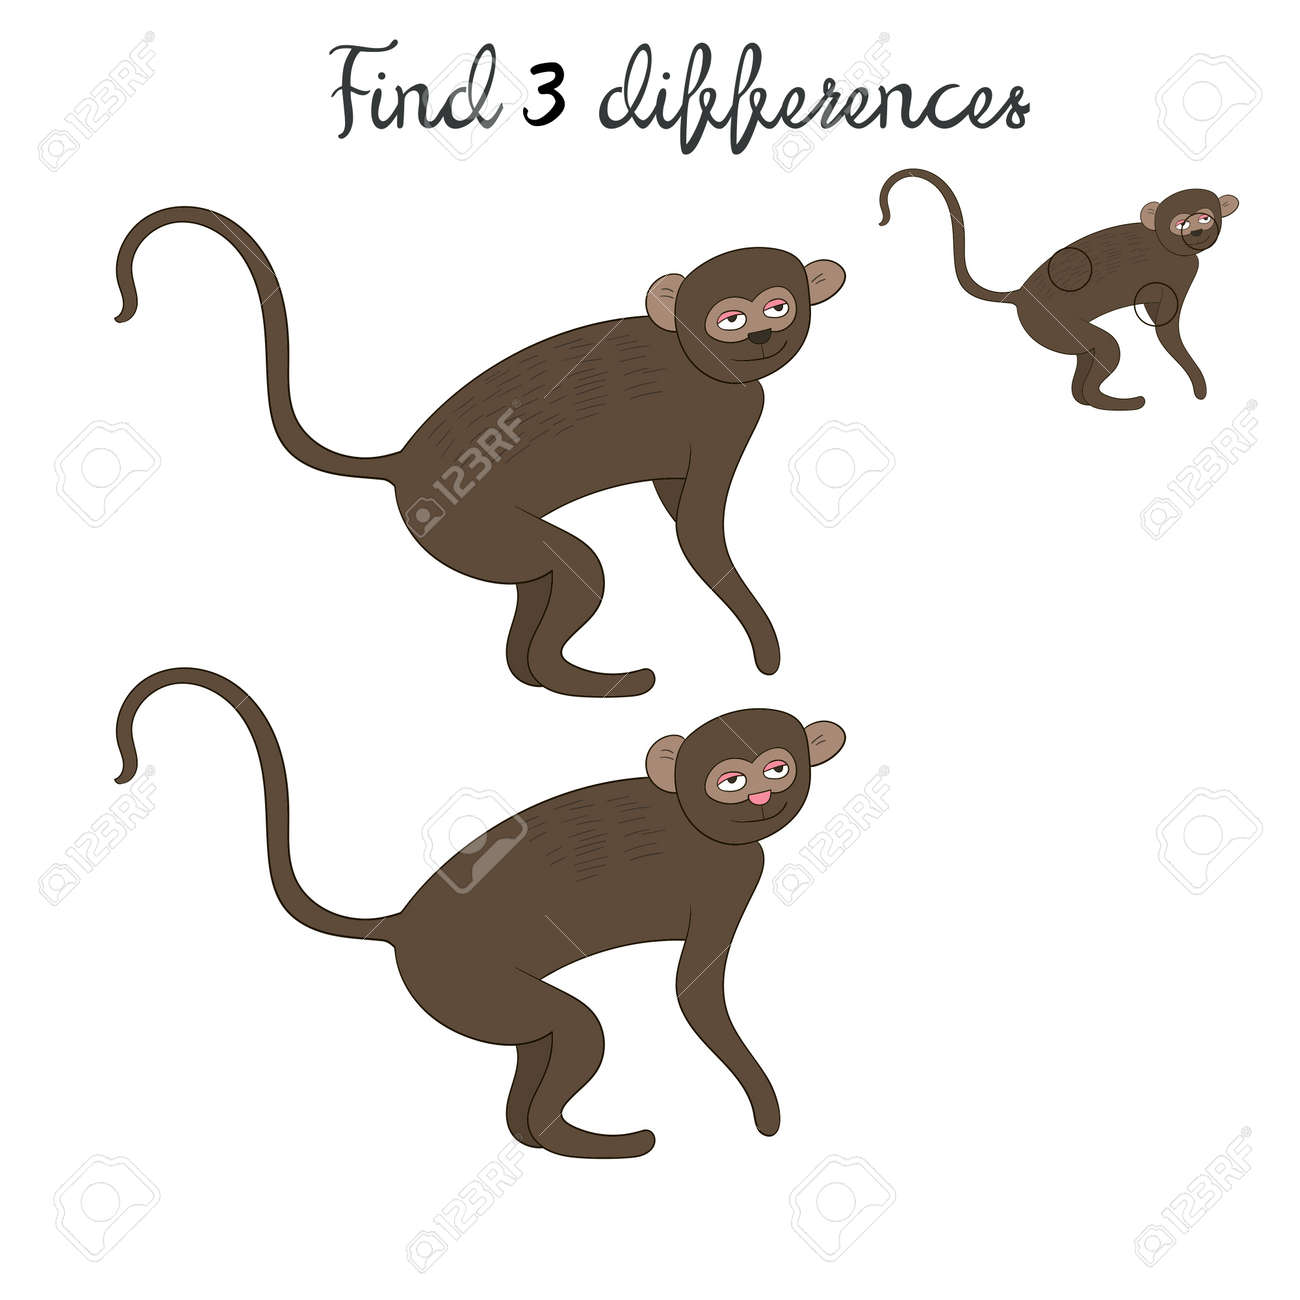 find differences kids layout for game vervet ape monkey hand